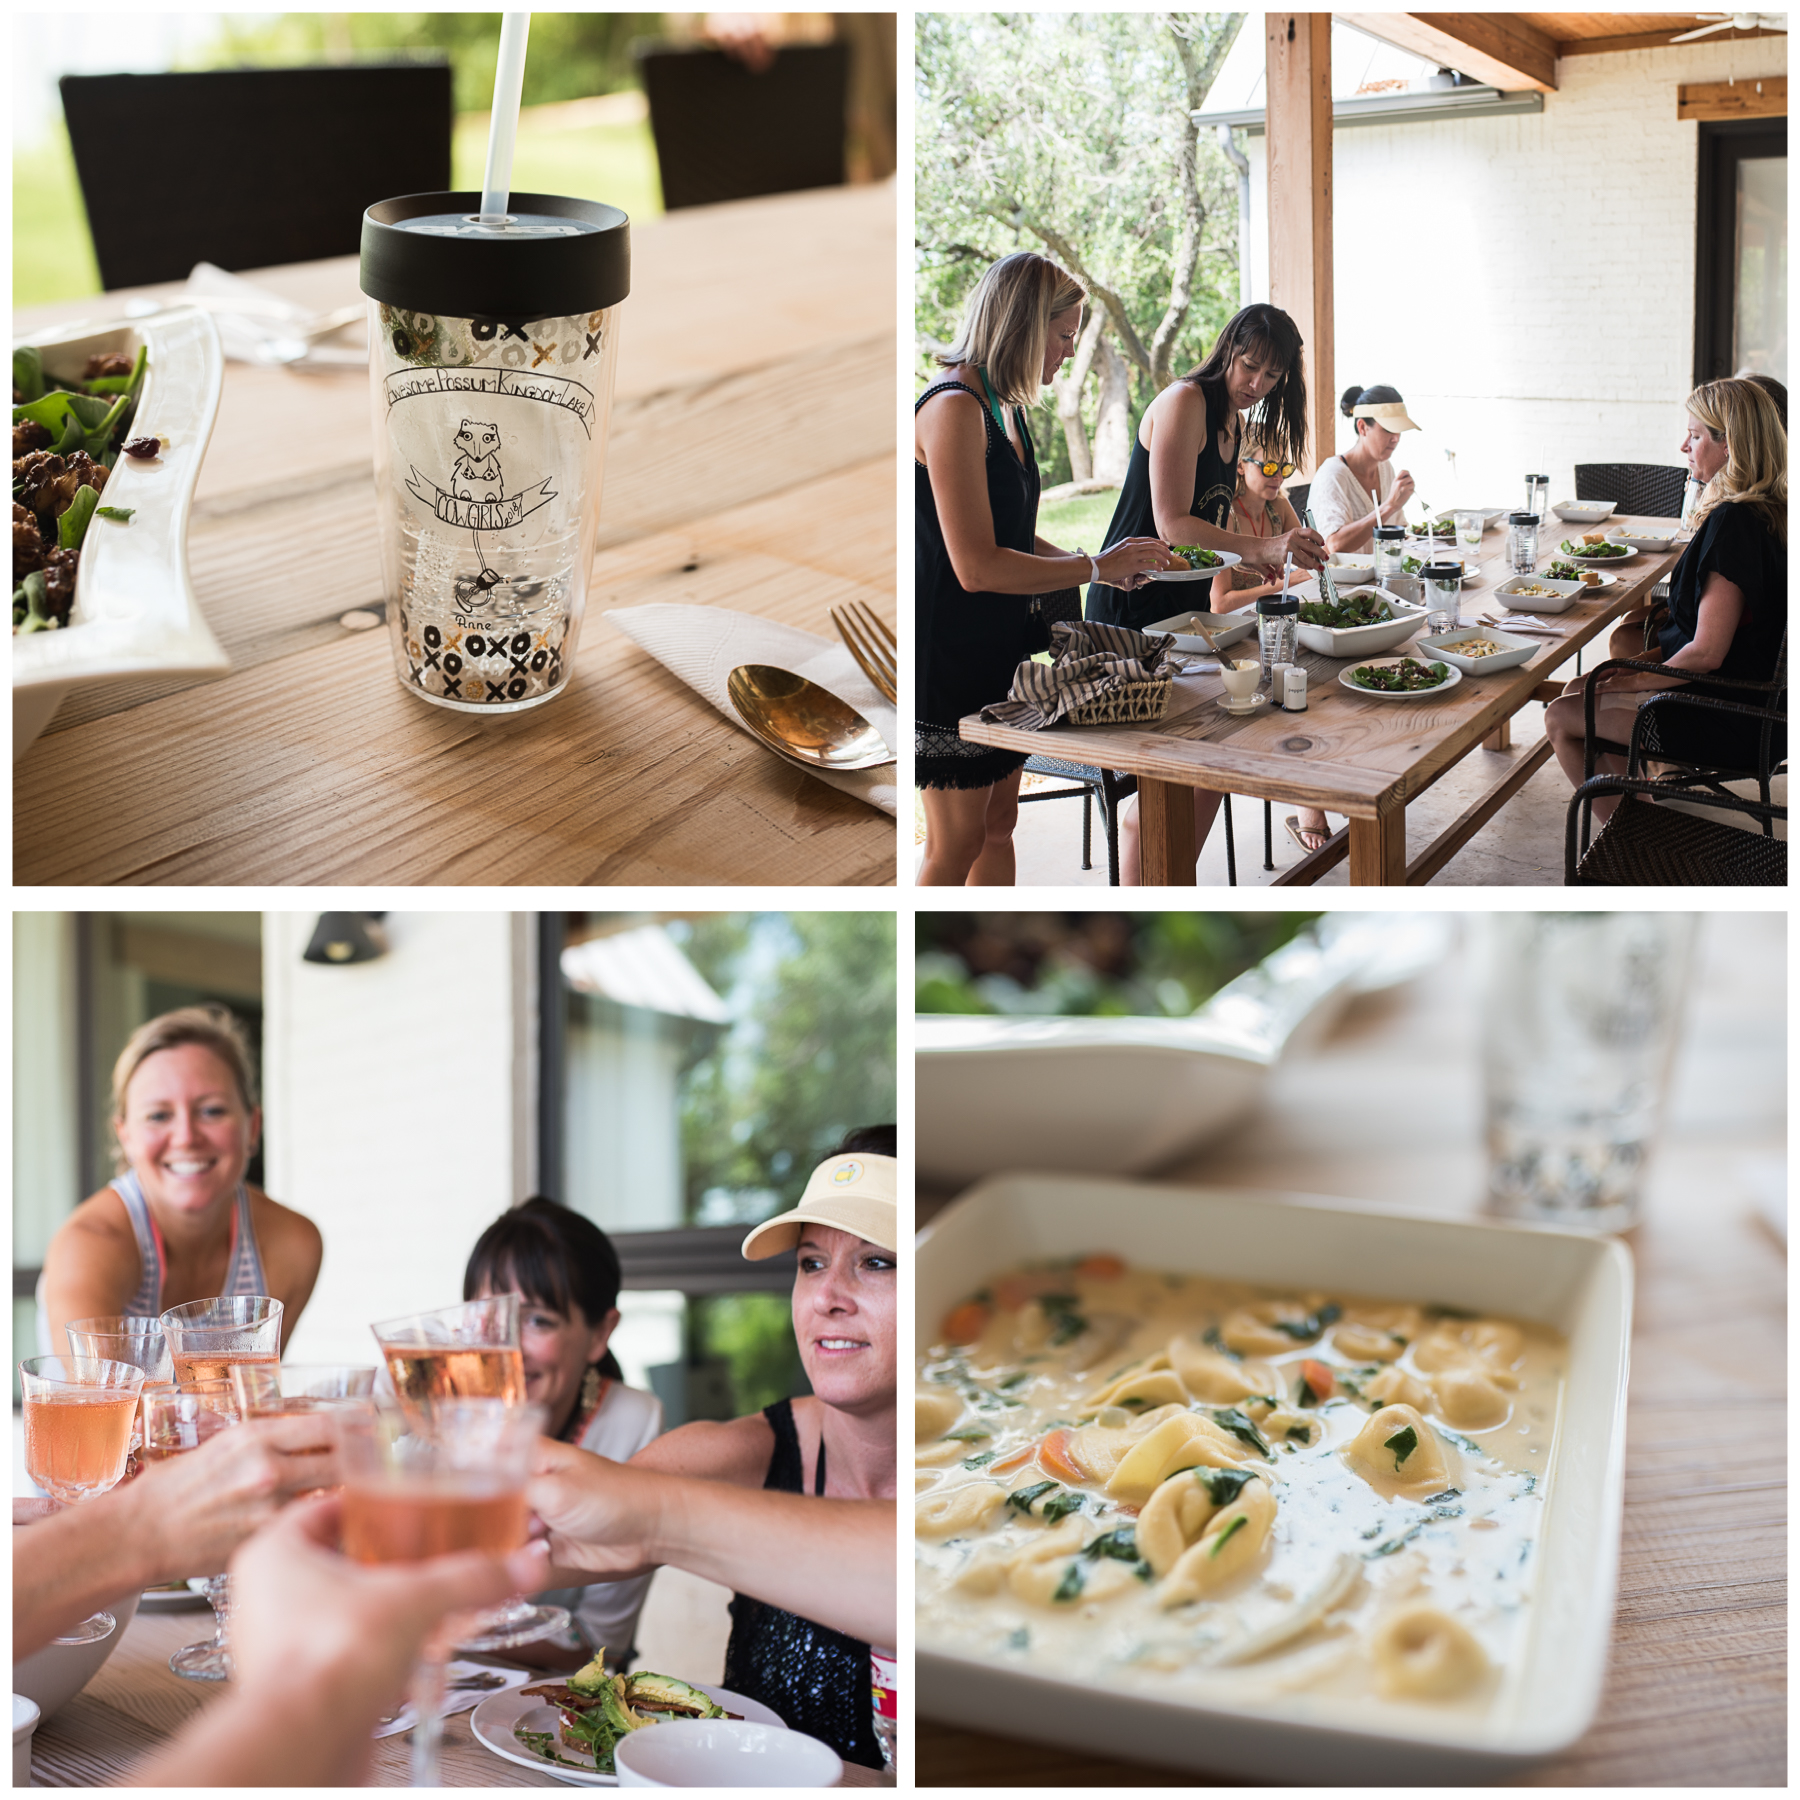 Aside from all being really awesome people, I'd also like to point out how great these ladies are when it comes to serving up a beautiful meal, paired with just the right bubbly.